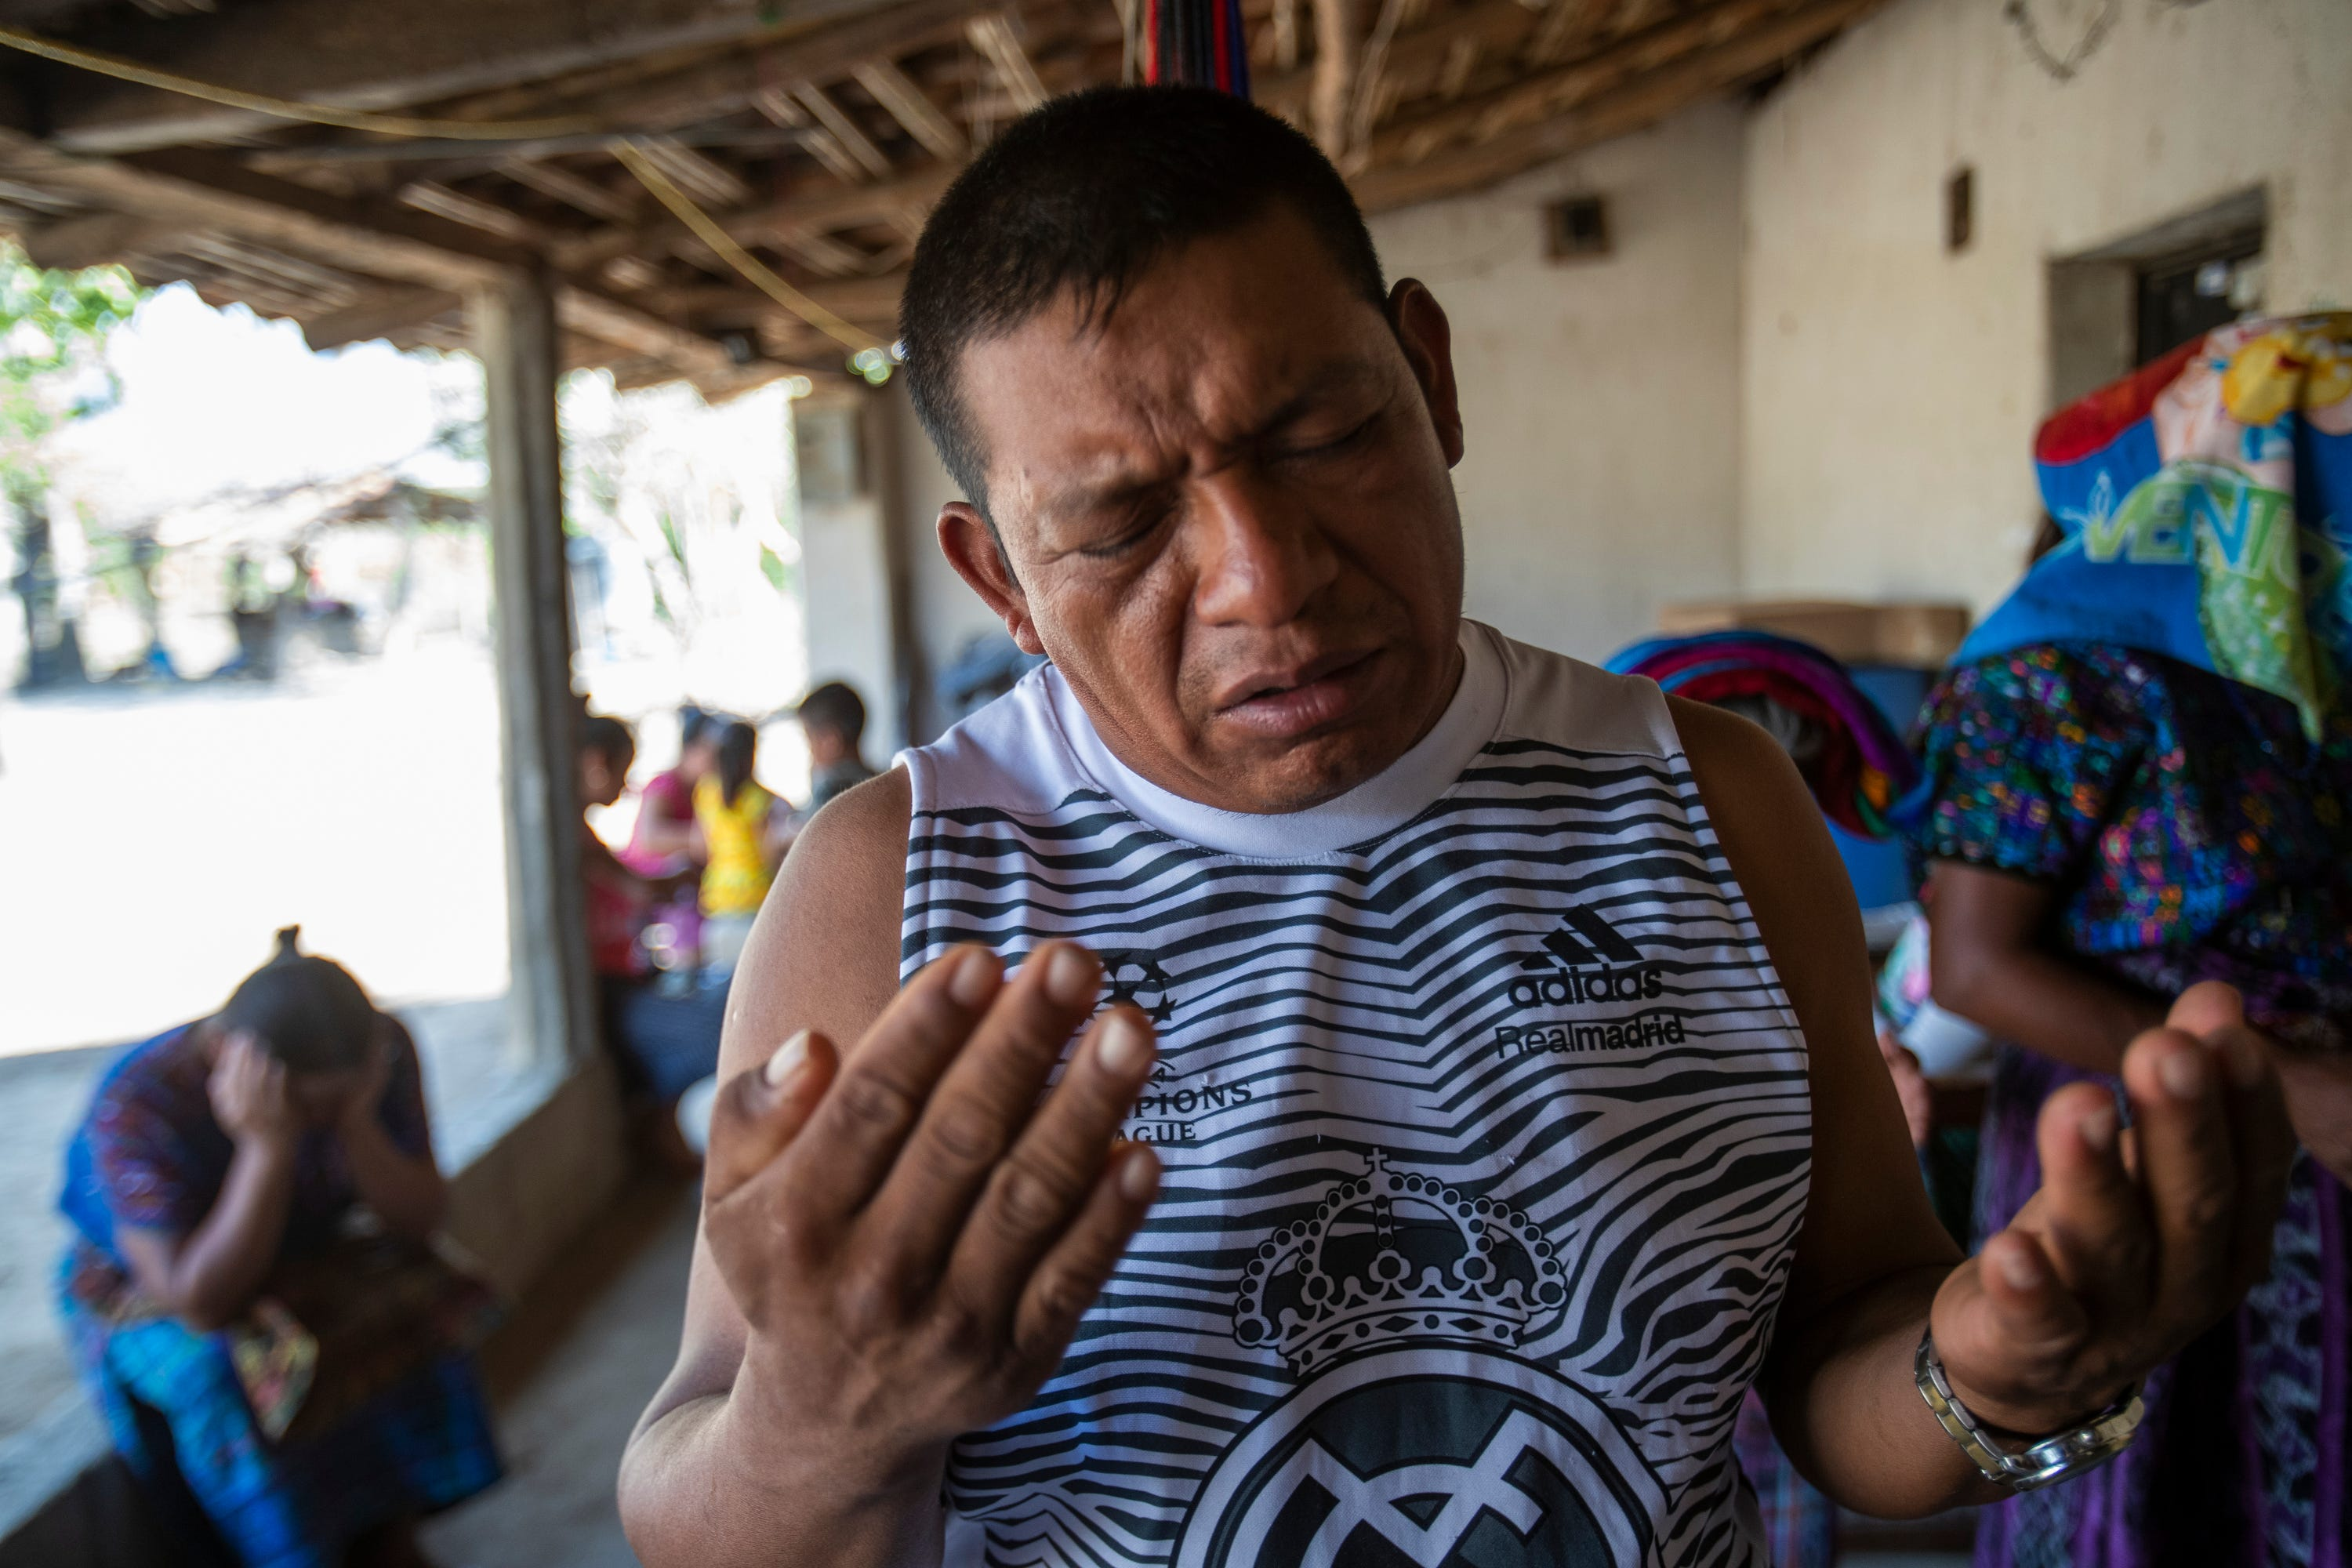 Francisco Sical prays for his father's health as members of his community gather for a moment of prayer in early March 2020.